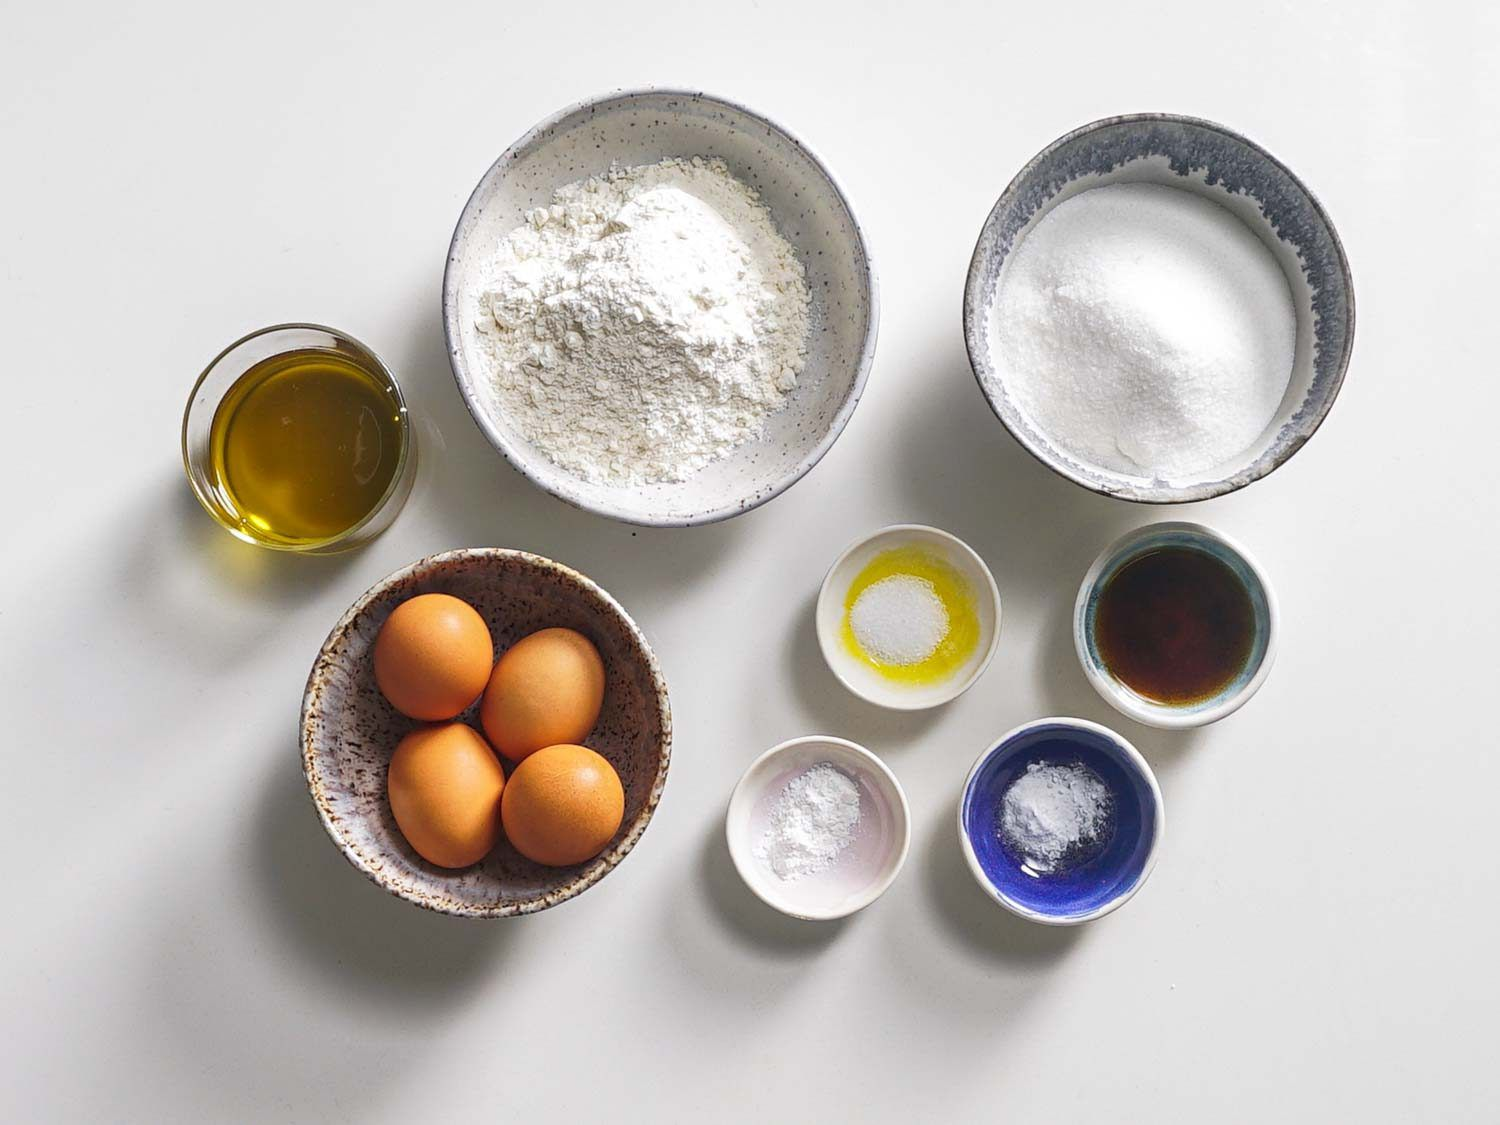 Ingredients for a classic jelly roll